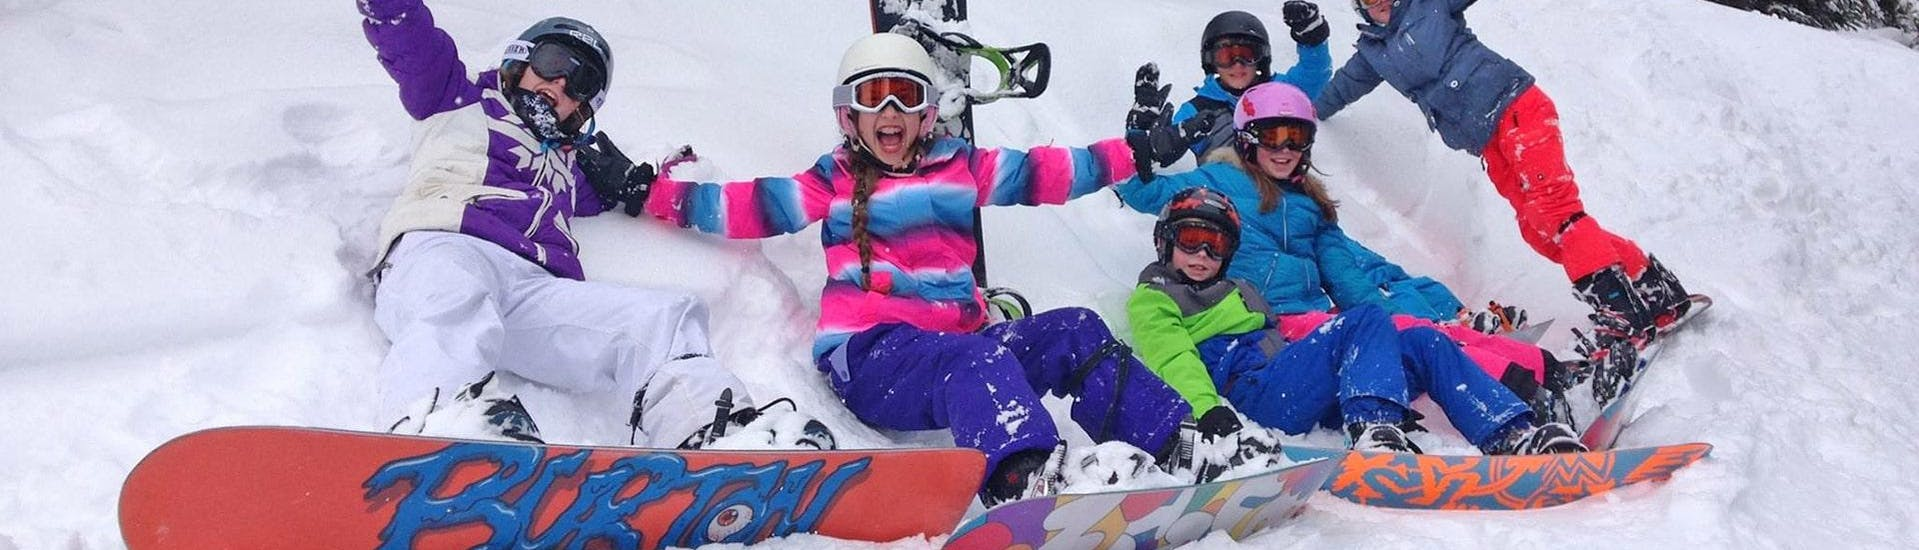 """A group of children enjoying themselves during their Snowboarding Lessons """"Young Boarder Zone"""" (7-14 years) with BOARD.AT."""